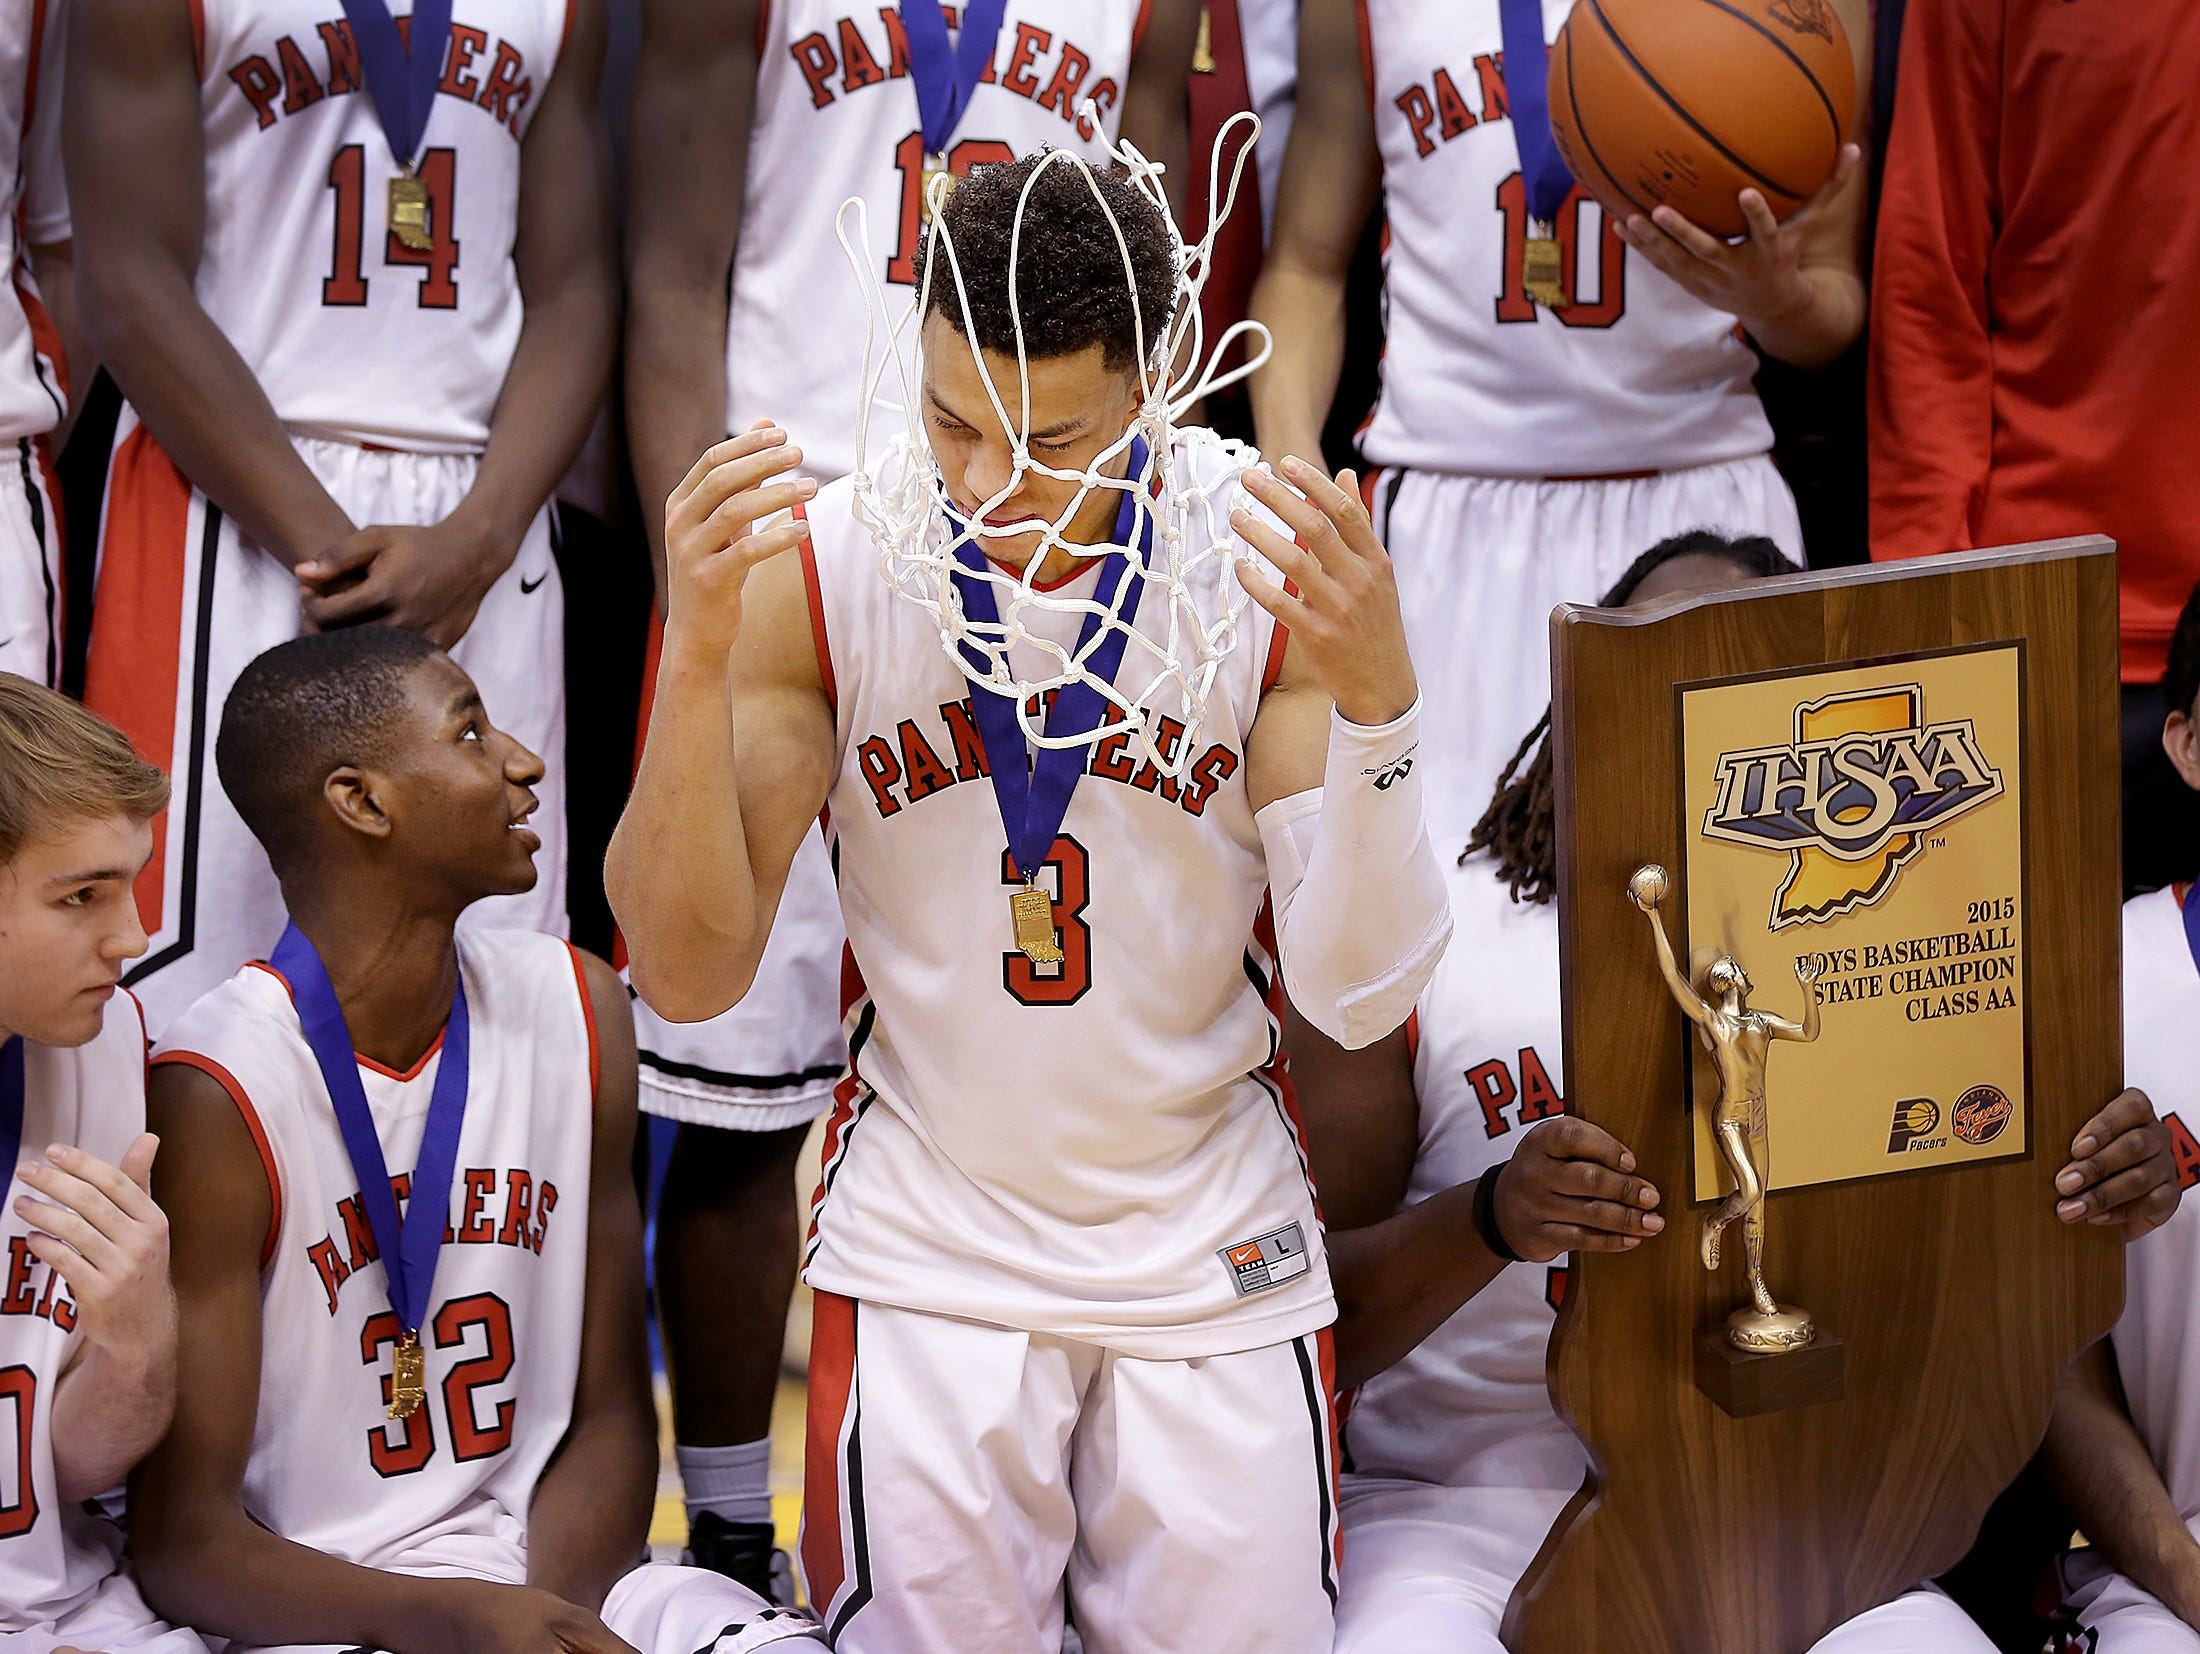 Park Tudor Bryce Moore tosses the net over head as he celebrates with his teammates. The Park Tudor Panther defeated the Frankton Eagles 73-46 to win the IHSAA 2A Boys Basketball State Final Saturday, March 28, 2015, afternoon at Bankers Life Fieldhouse.